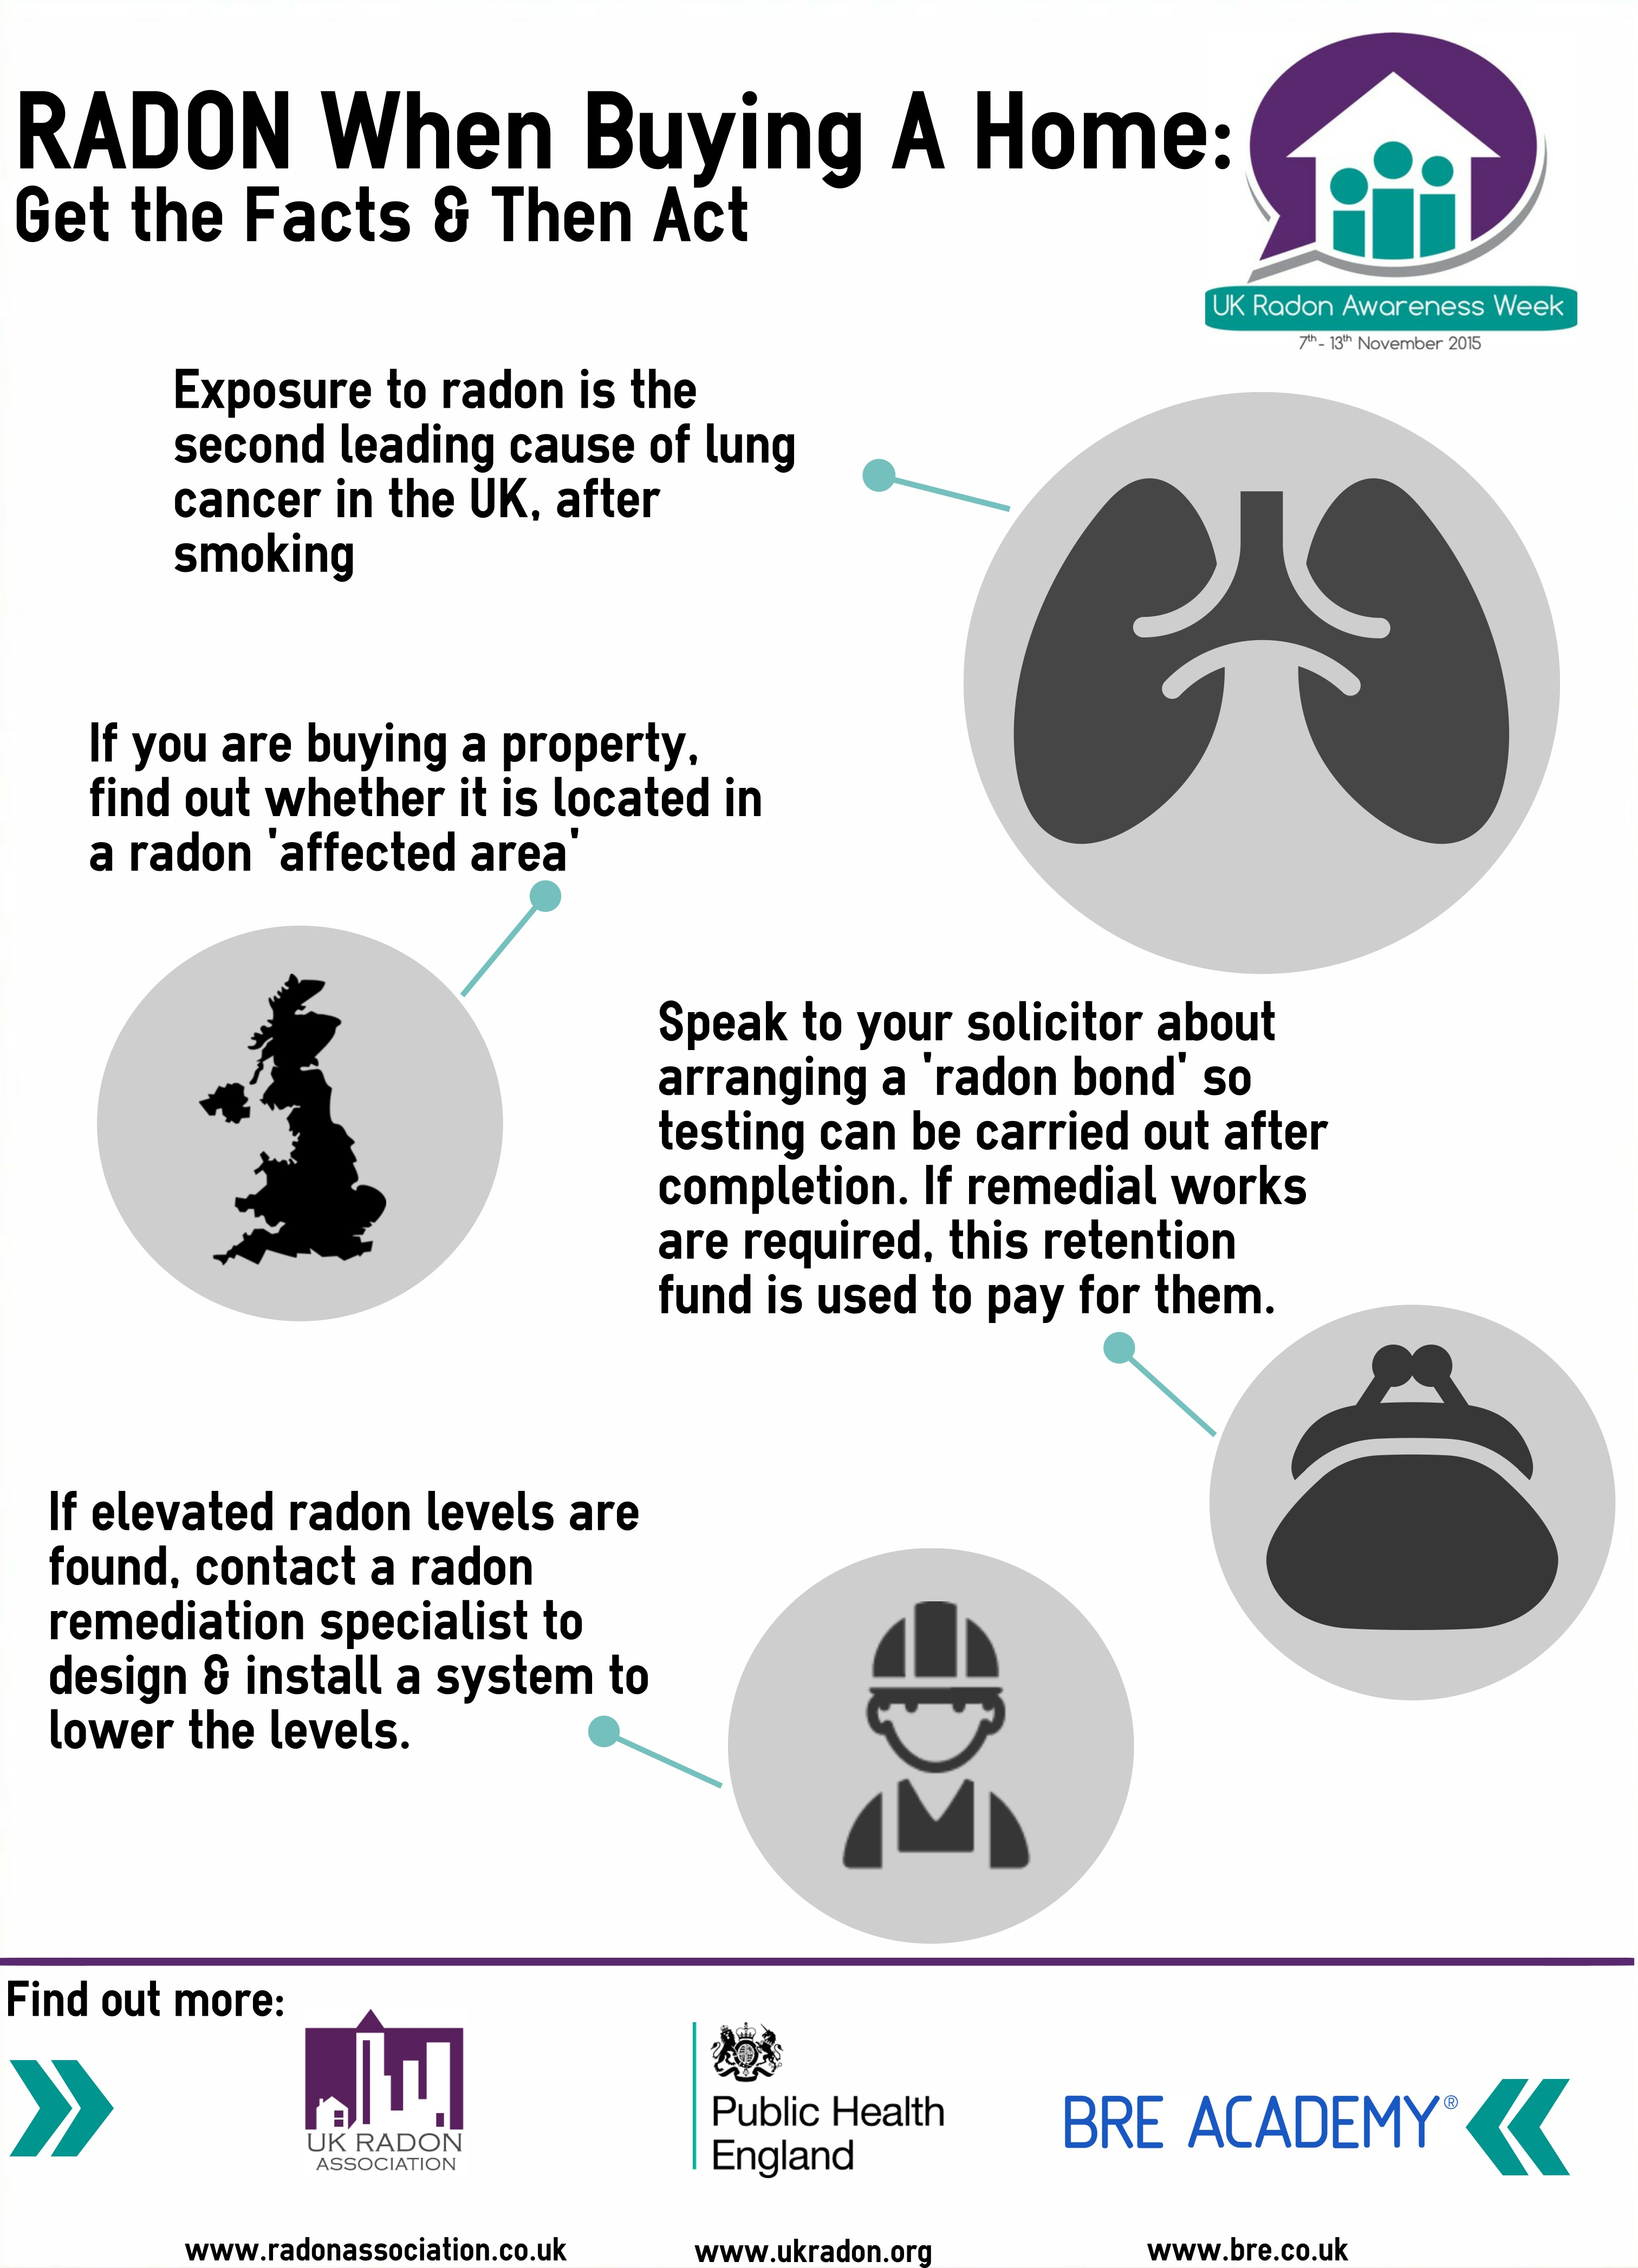 Facts about buying a home - Ukraw Radon When Buying Homes